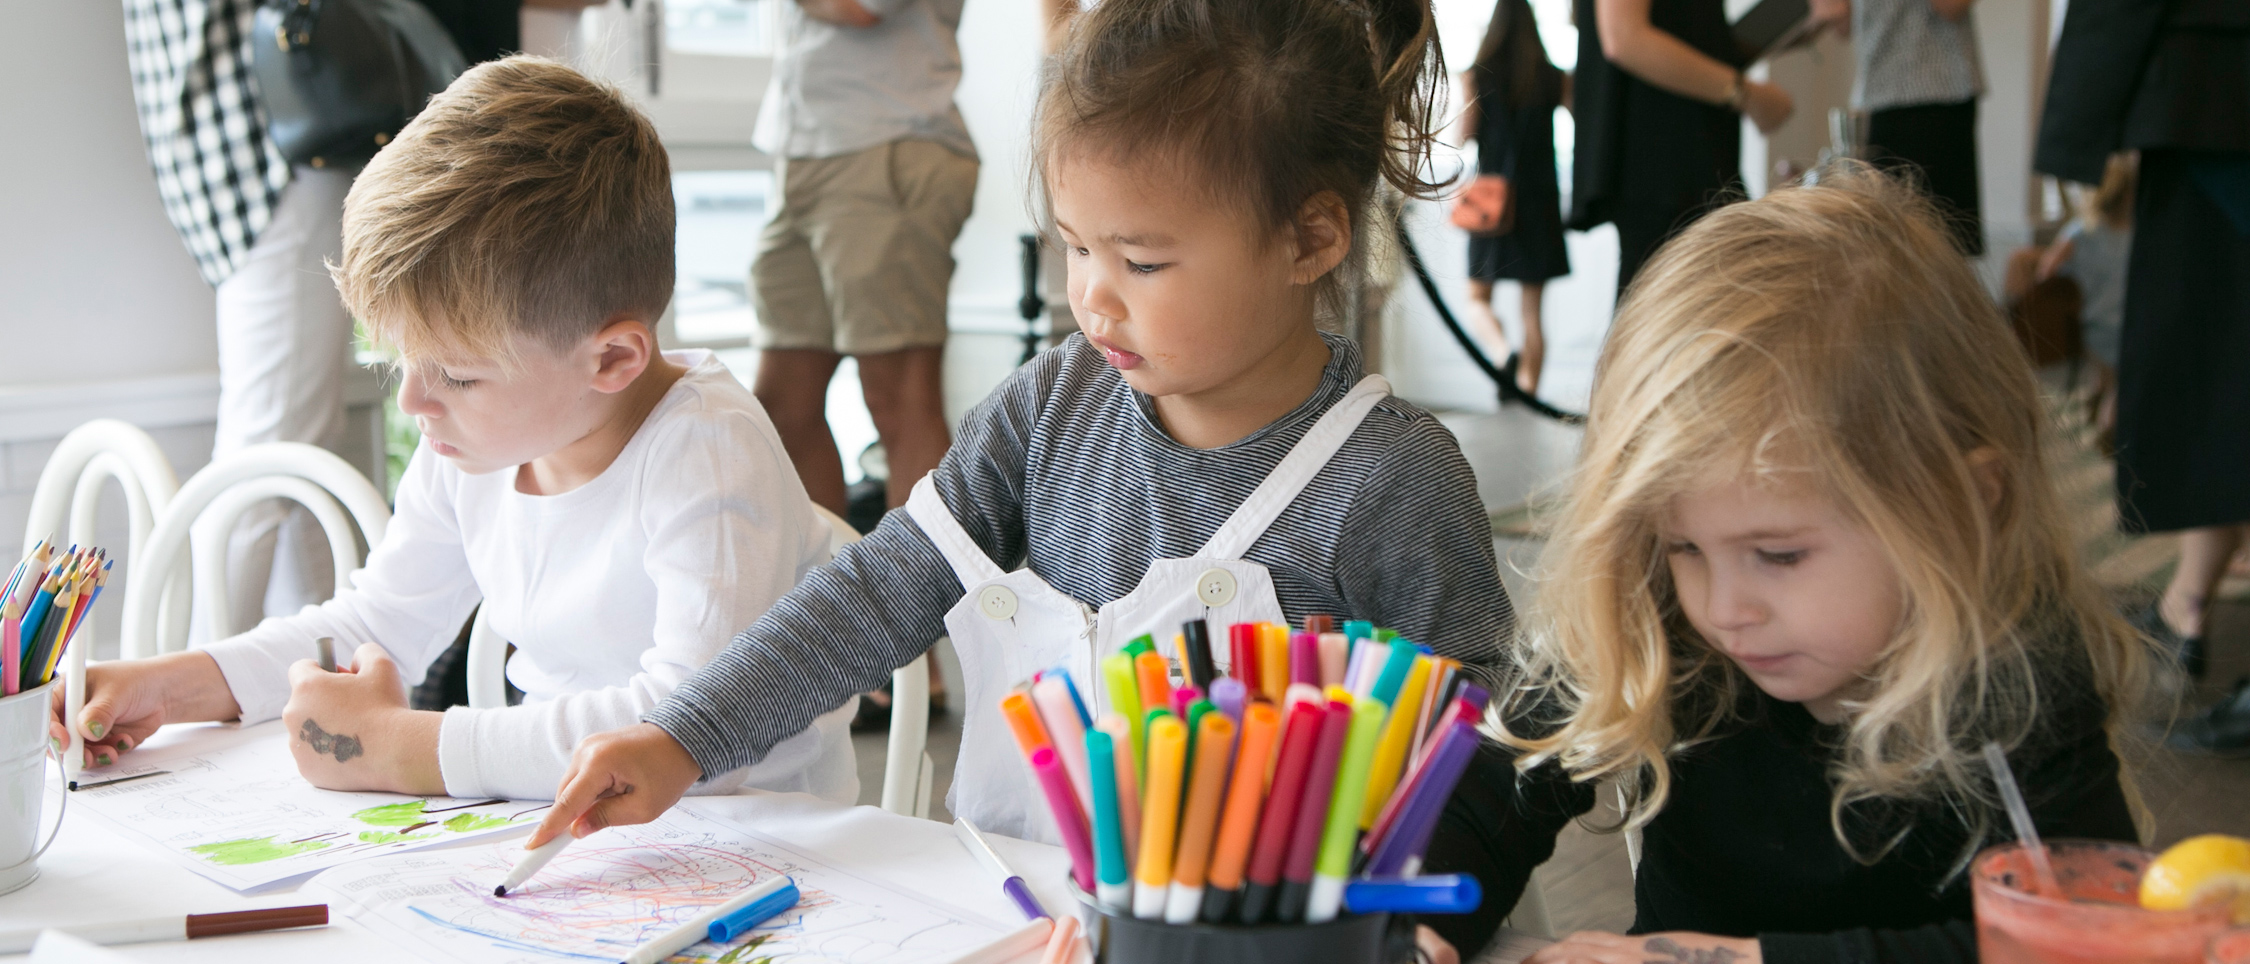 How To Throw A Kid's Party (And Stay Sane)